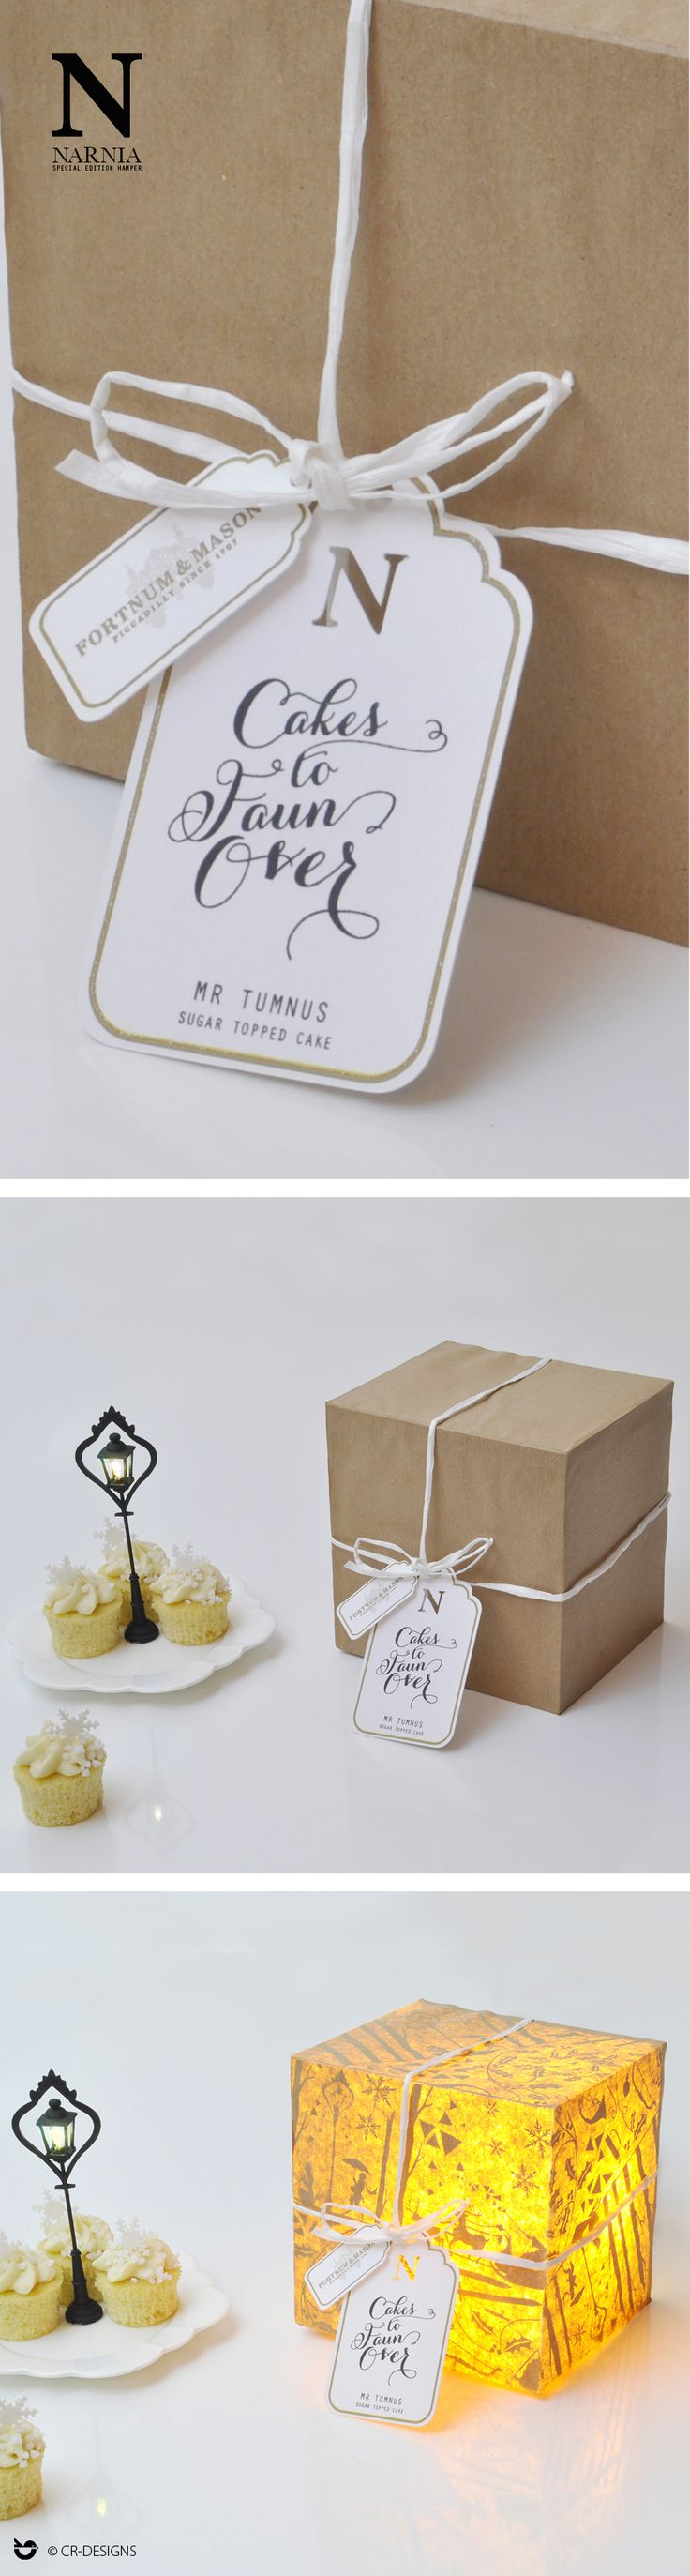 25 Best Ideas About Cake Packaging On Pinterest Cake